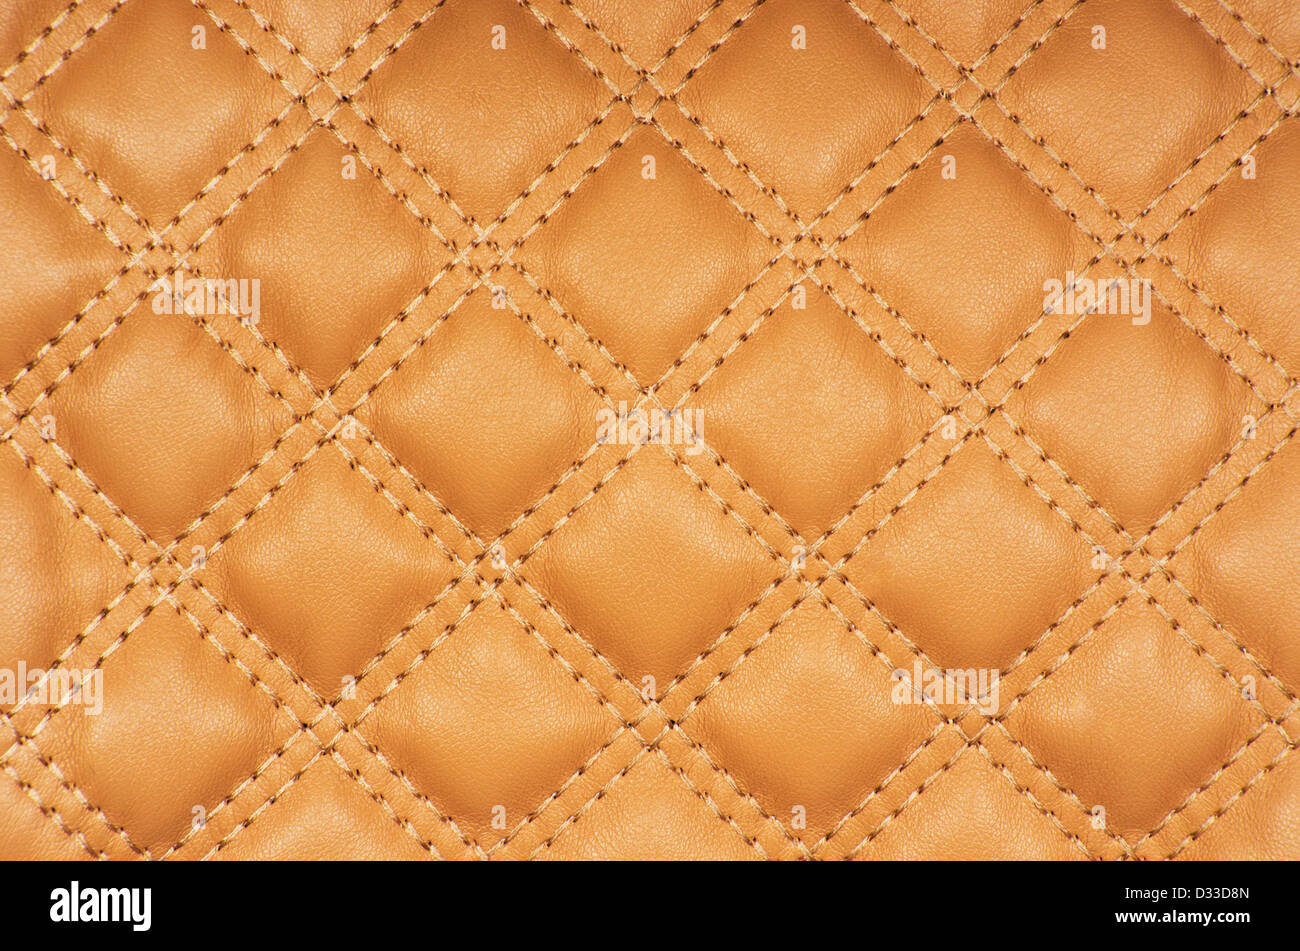 Sepia picture of genuine leather upholstery - Stock Image